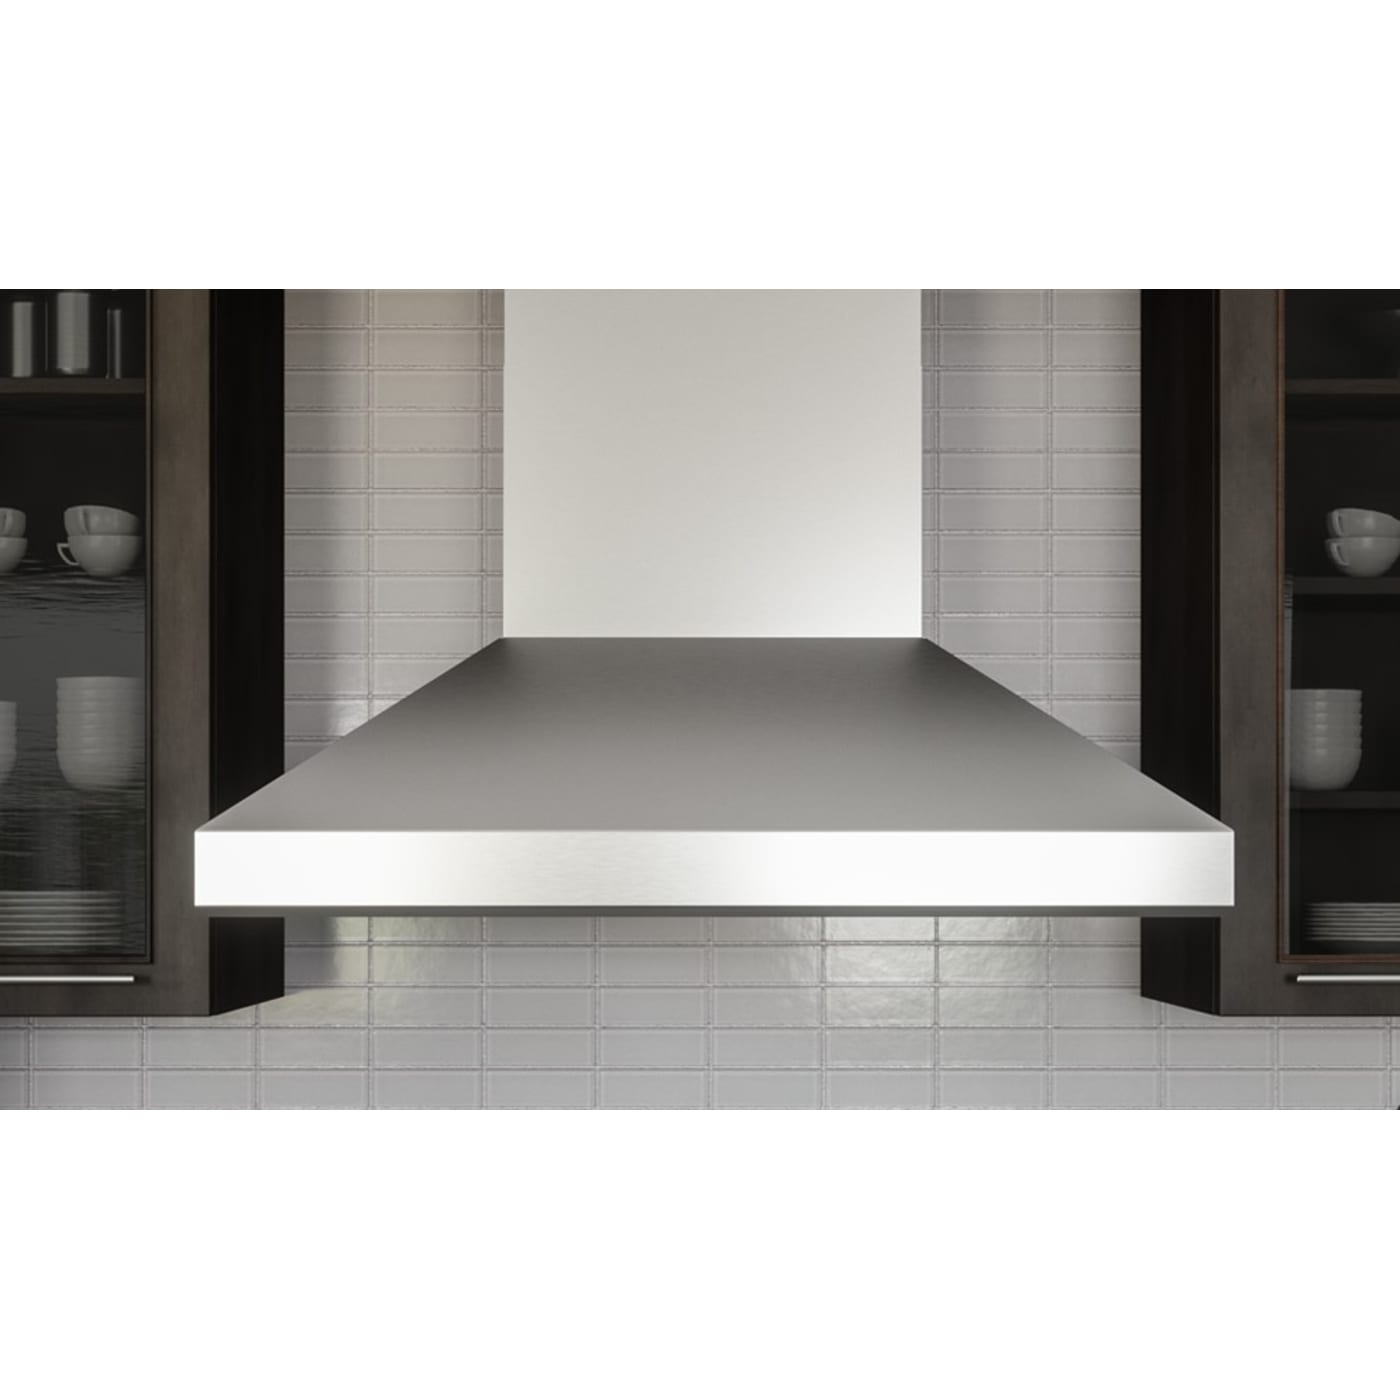 impressive zephyr cabinet hood ducted of ductless full broan com picture hoods under amazon best size range pro inch ideas